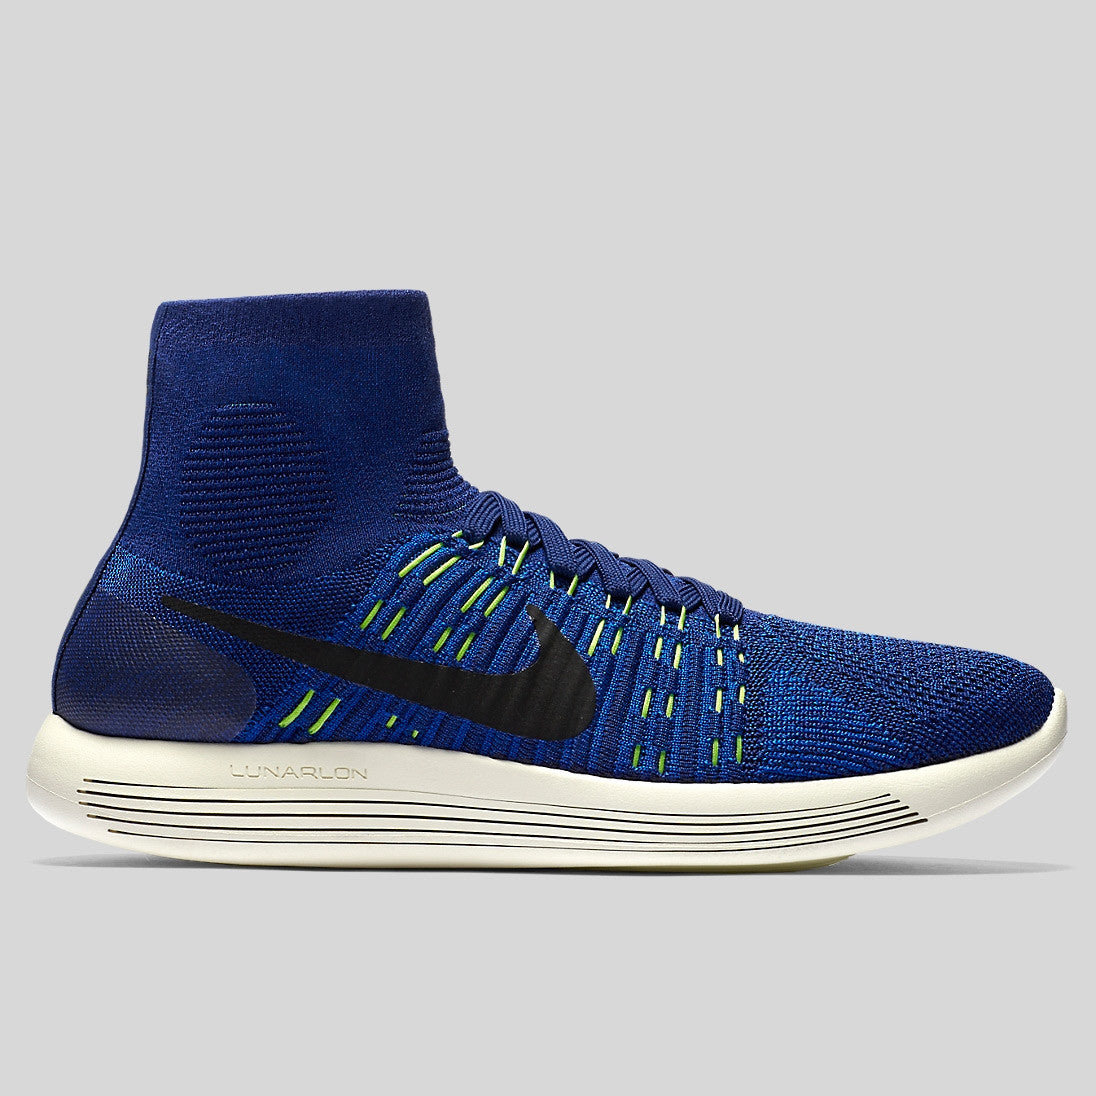 Nike Lunarepic Flyknit Deep Royal Blue Black Volt (818676-400)  48d0b285aeb5